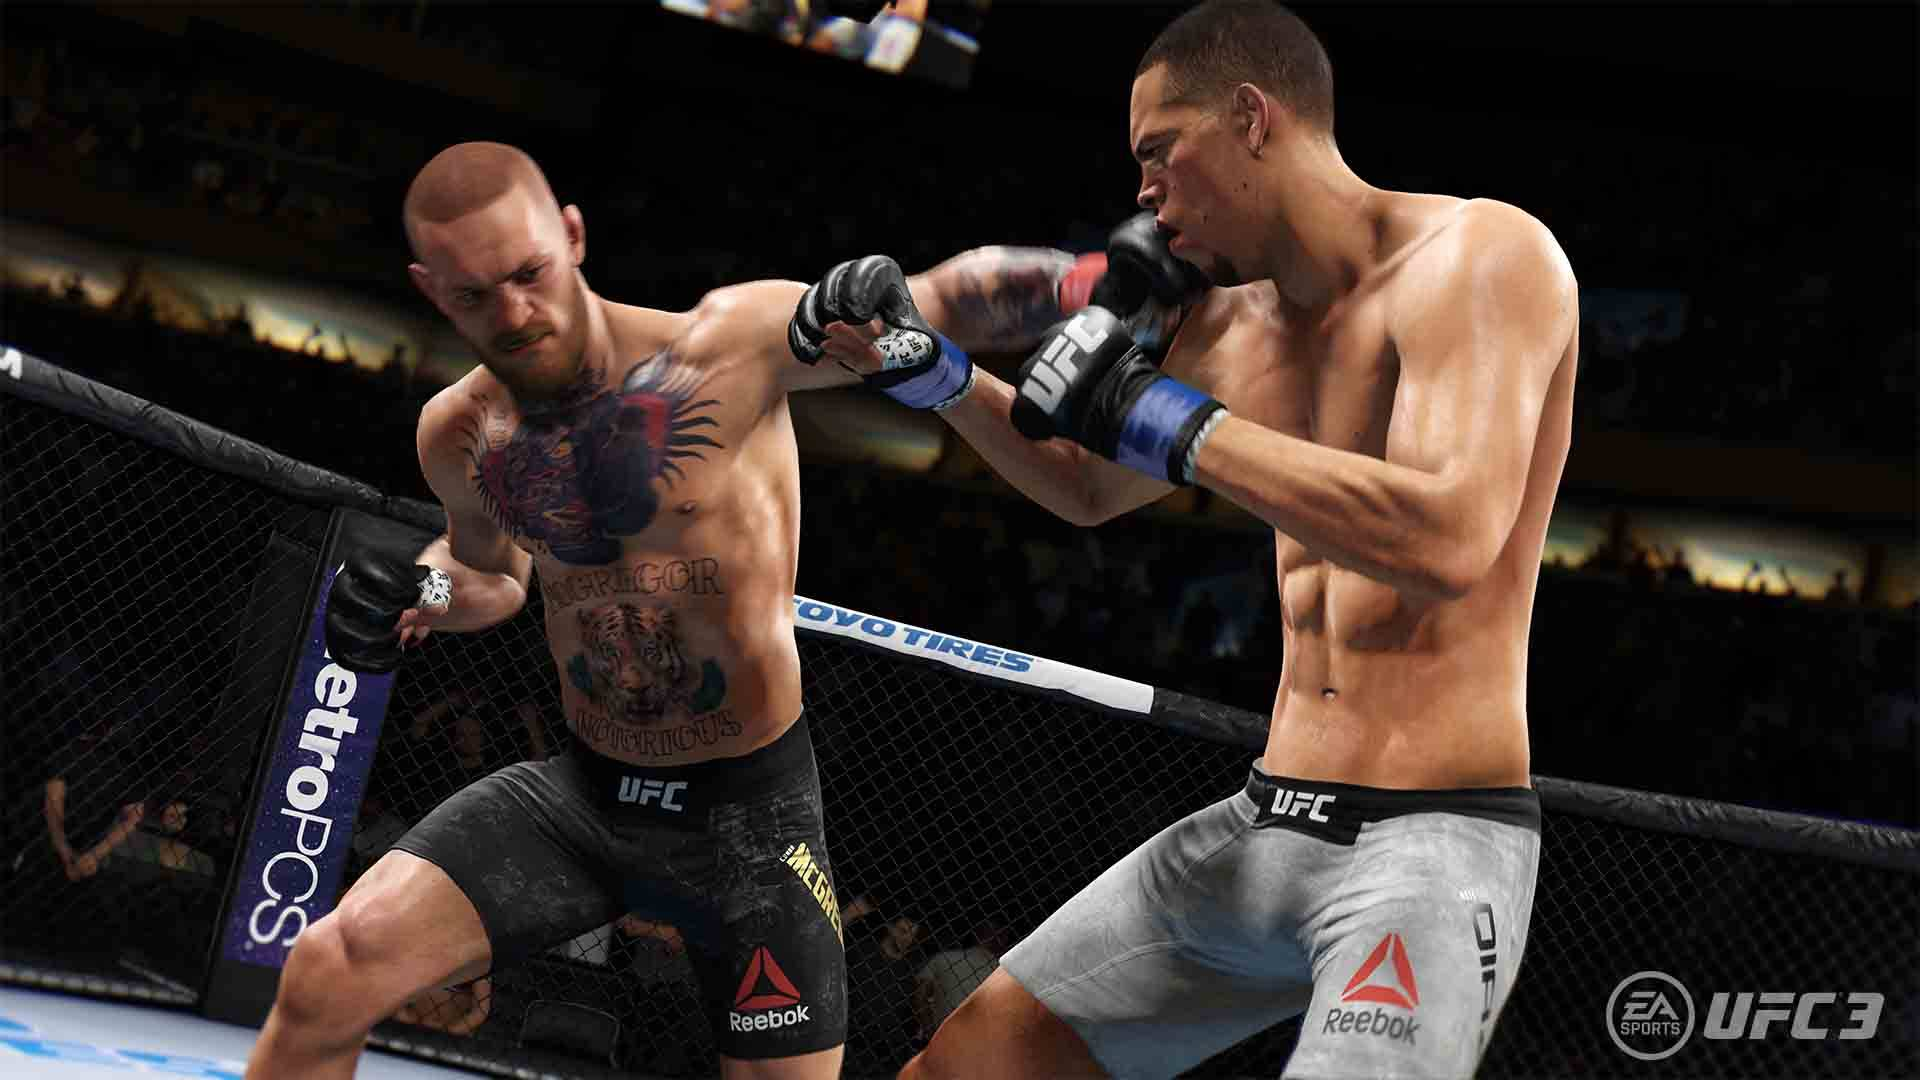 UFC3_Conor_RPM_5_FINAL_1920x1080